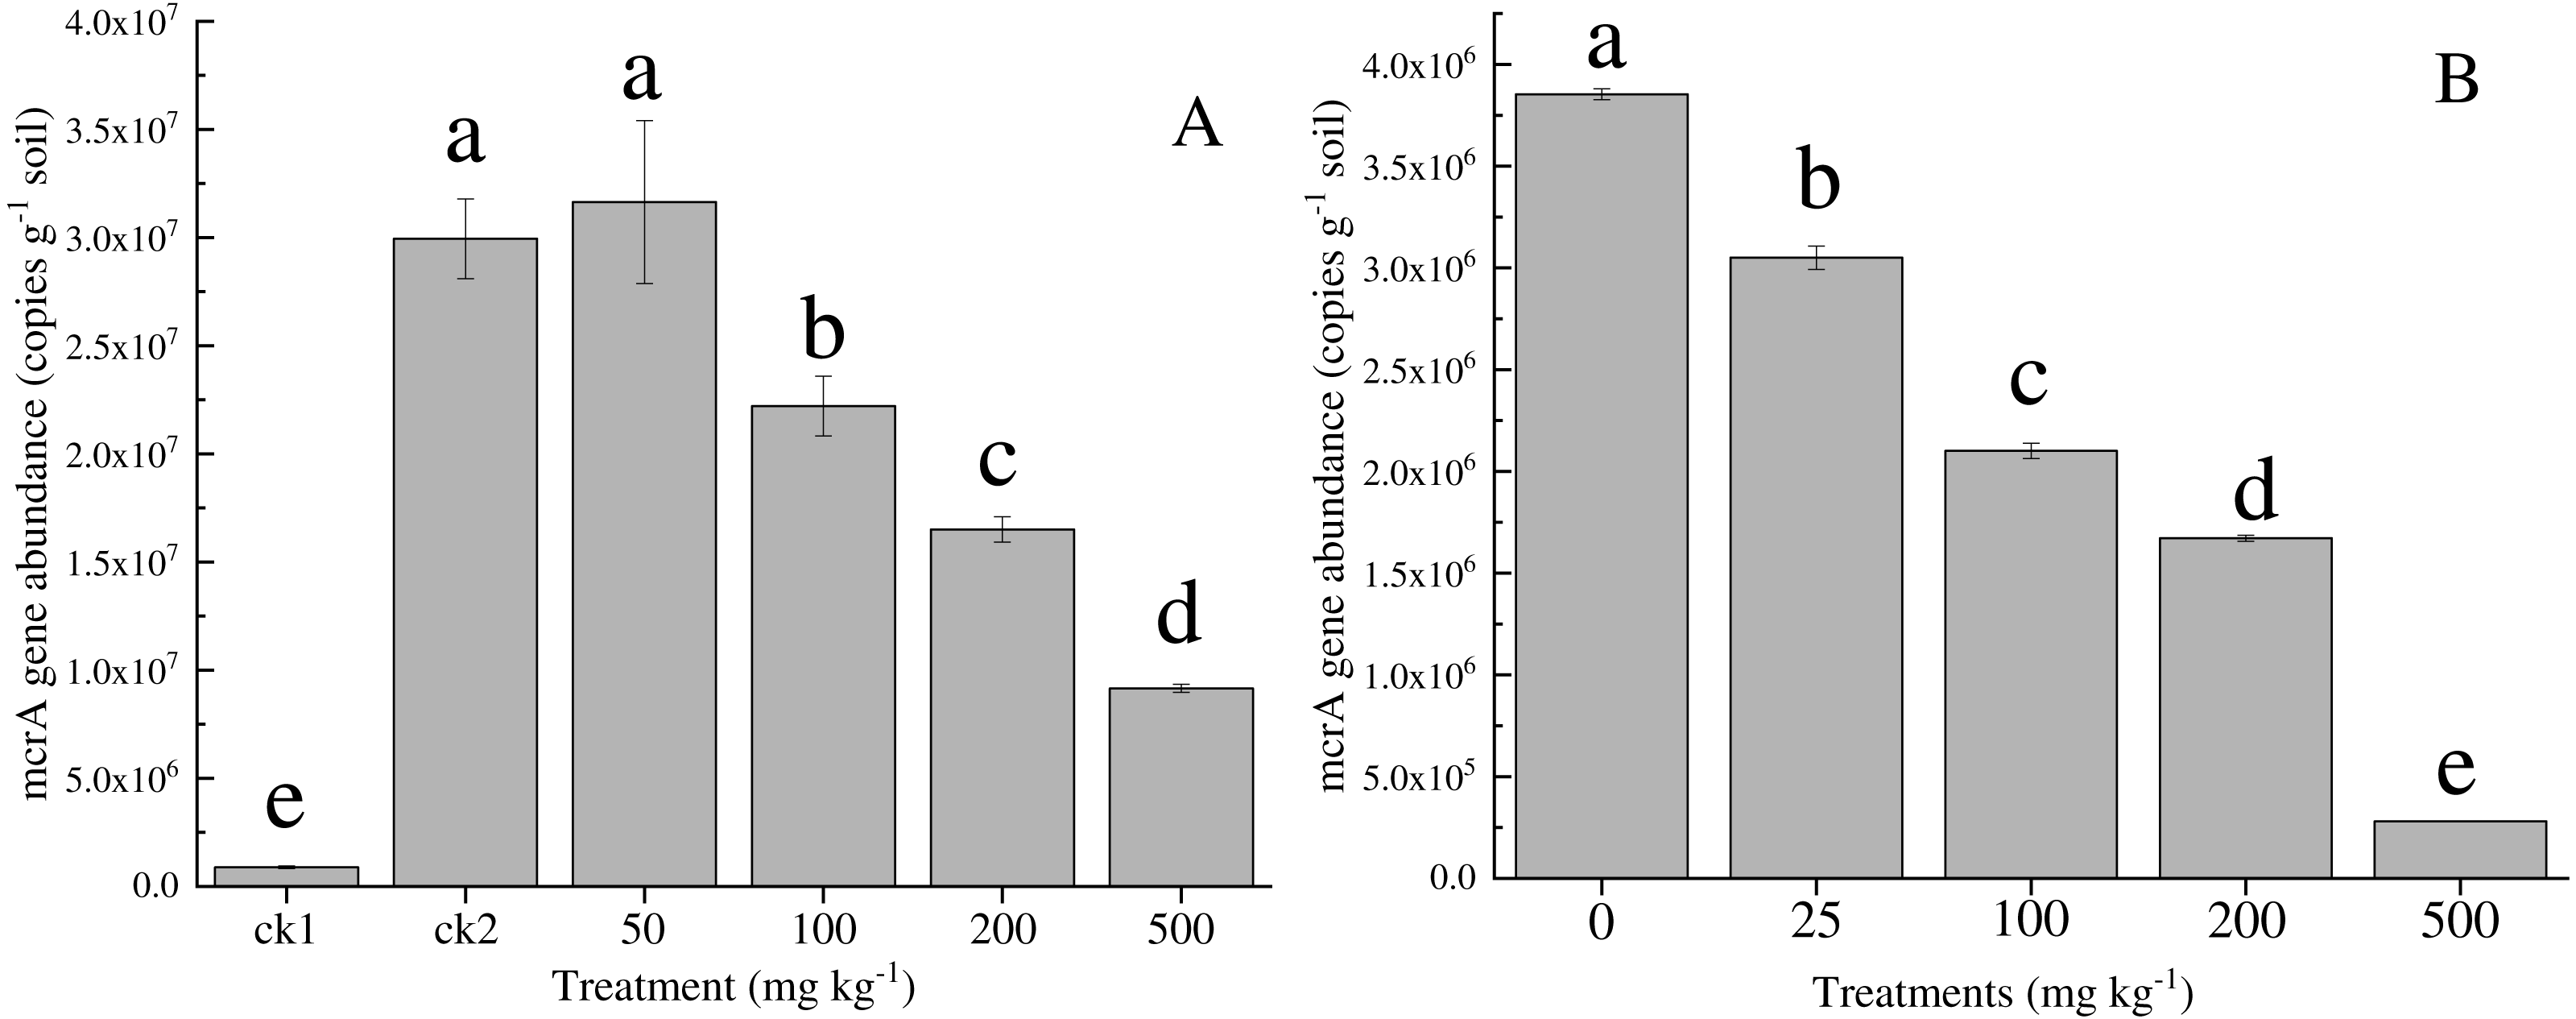 Effects of nickel and cobalt on methane production and methanogen